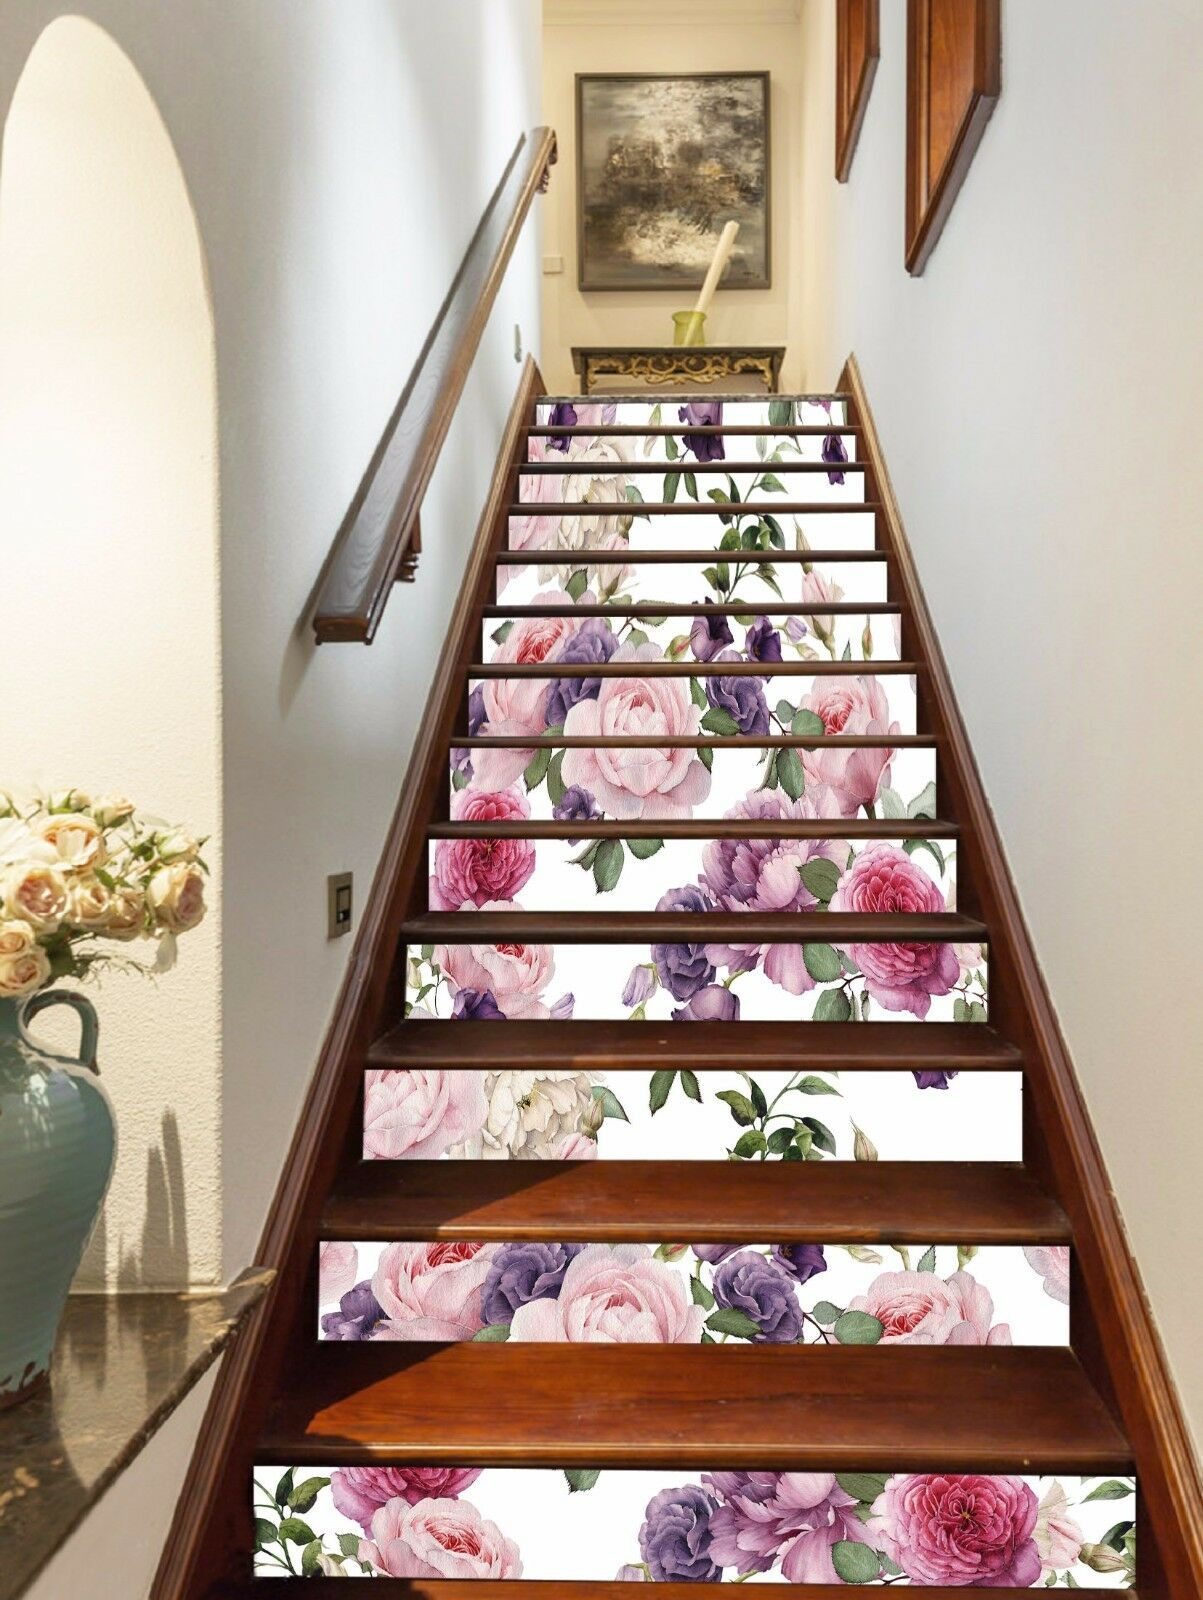 3D Camellias 740 Stair Risers Decoration Photo Mural Vinyl Decal Wallpaper AU